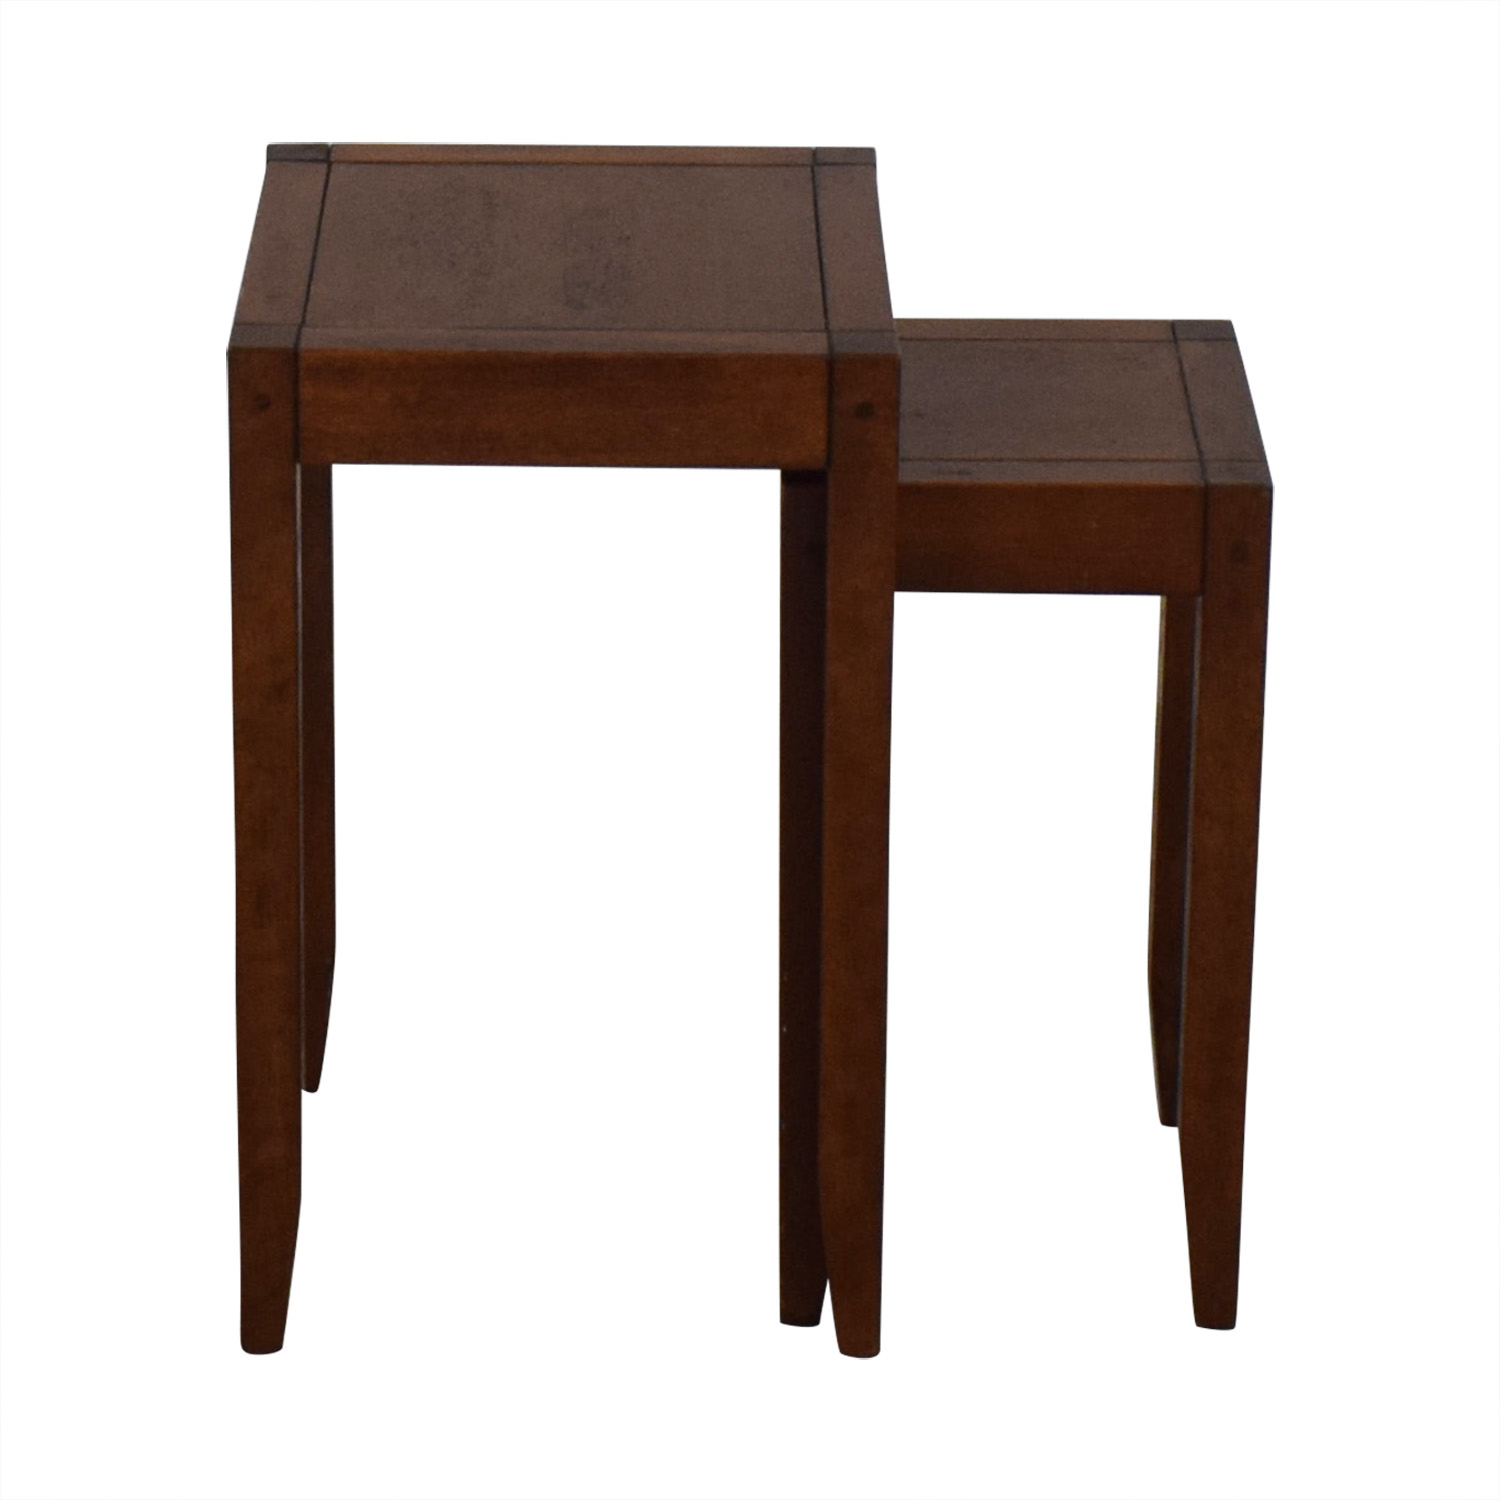 Nesting Accent Tables on sale